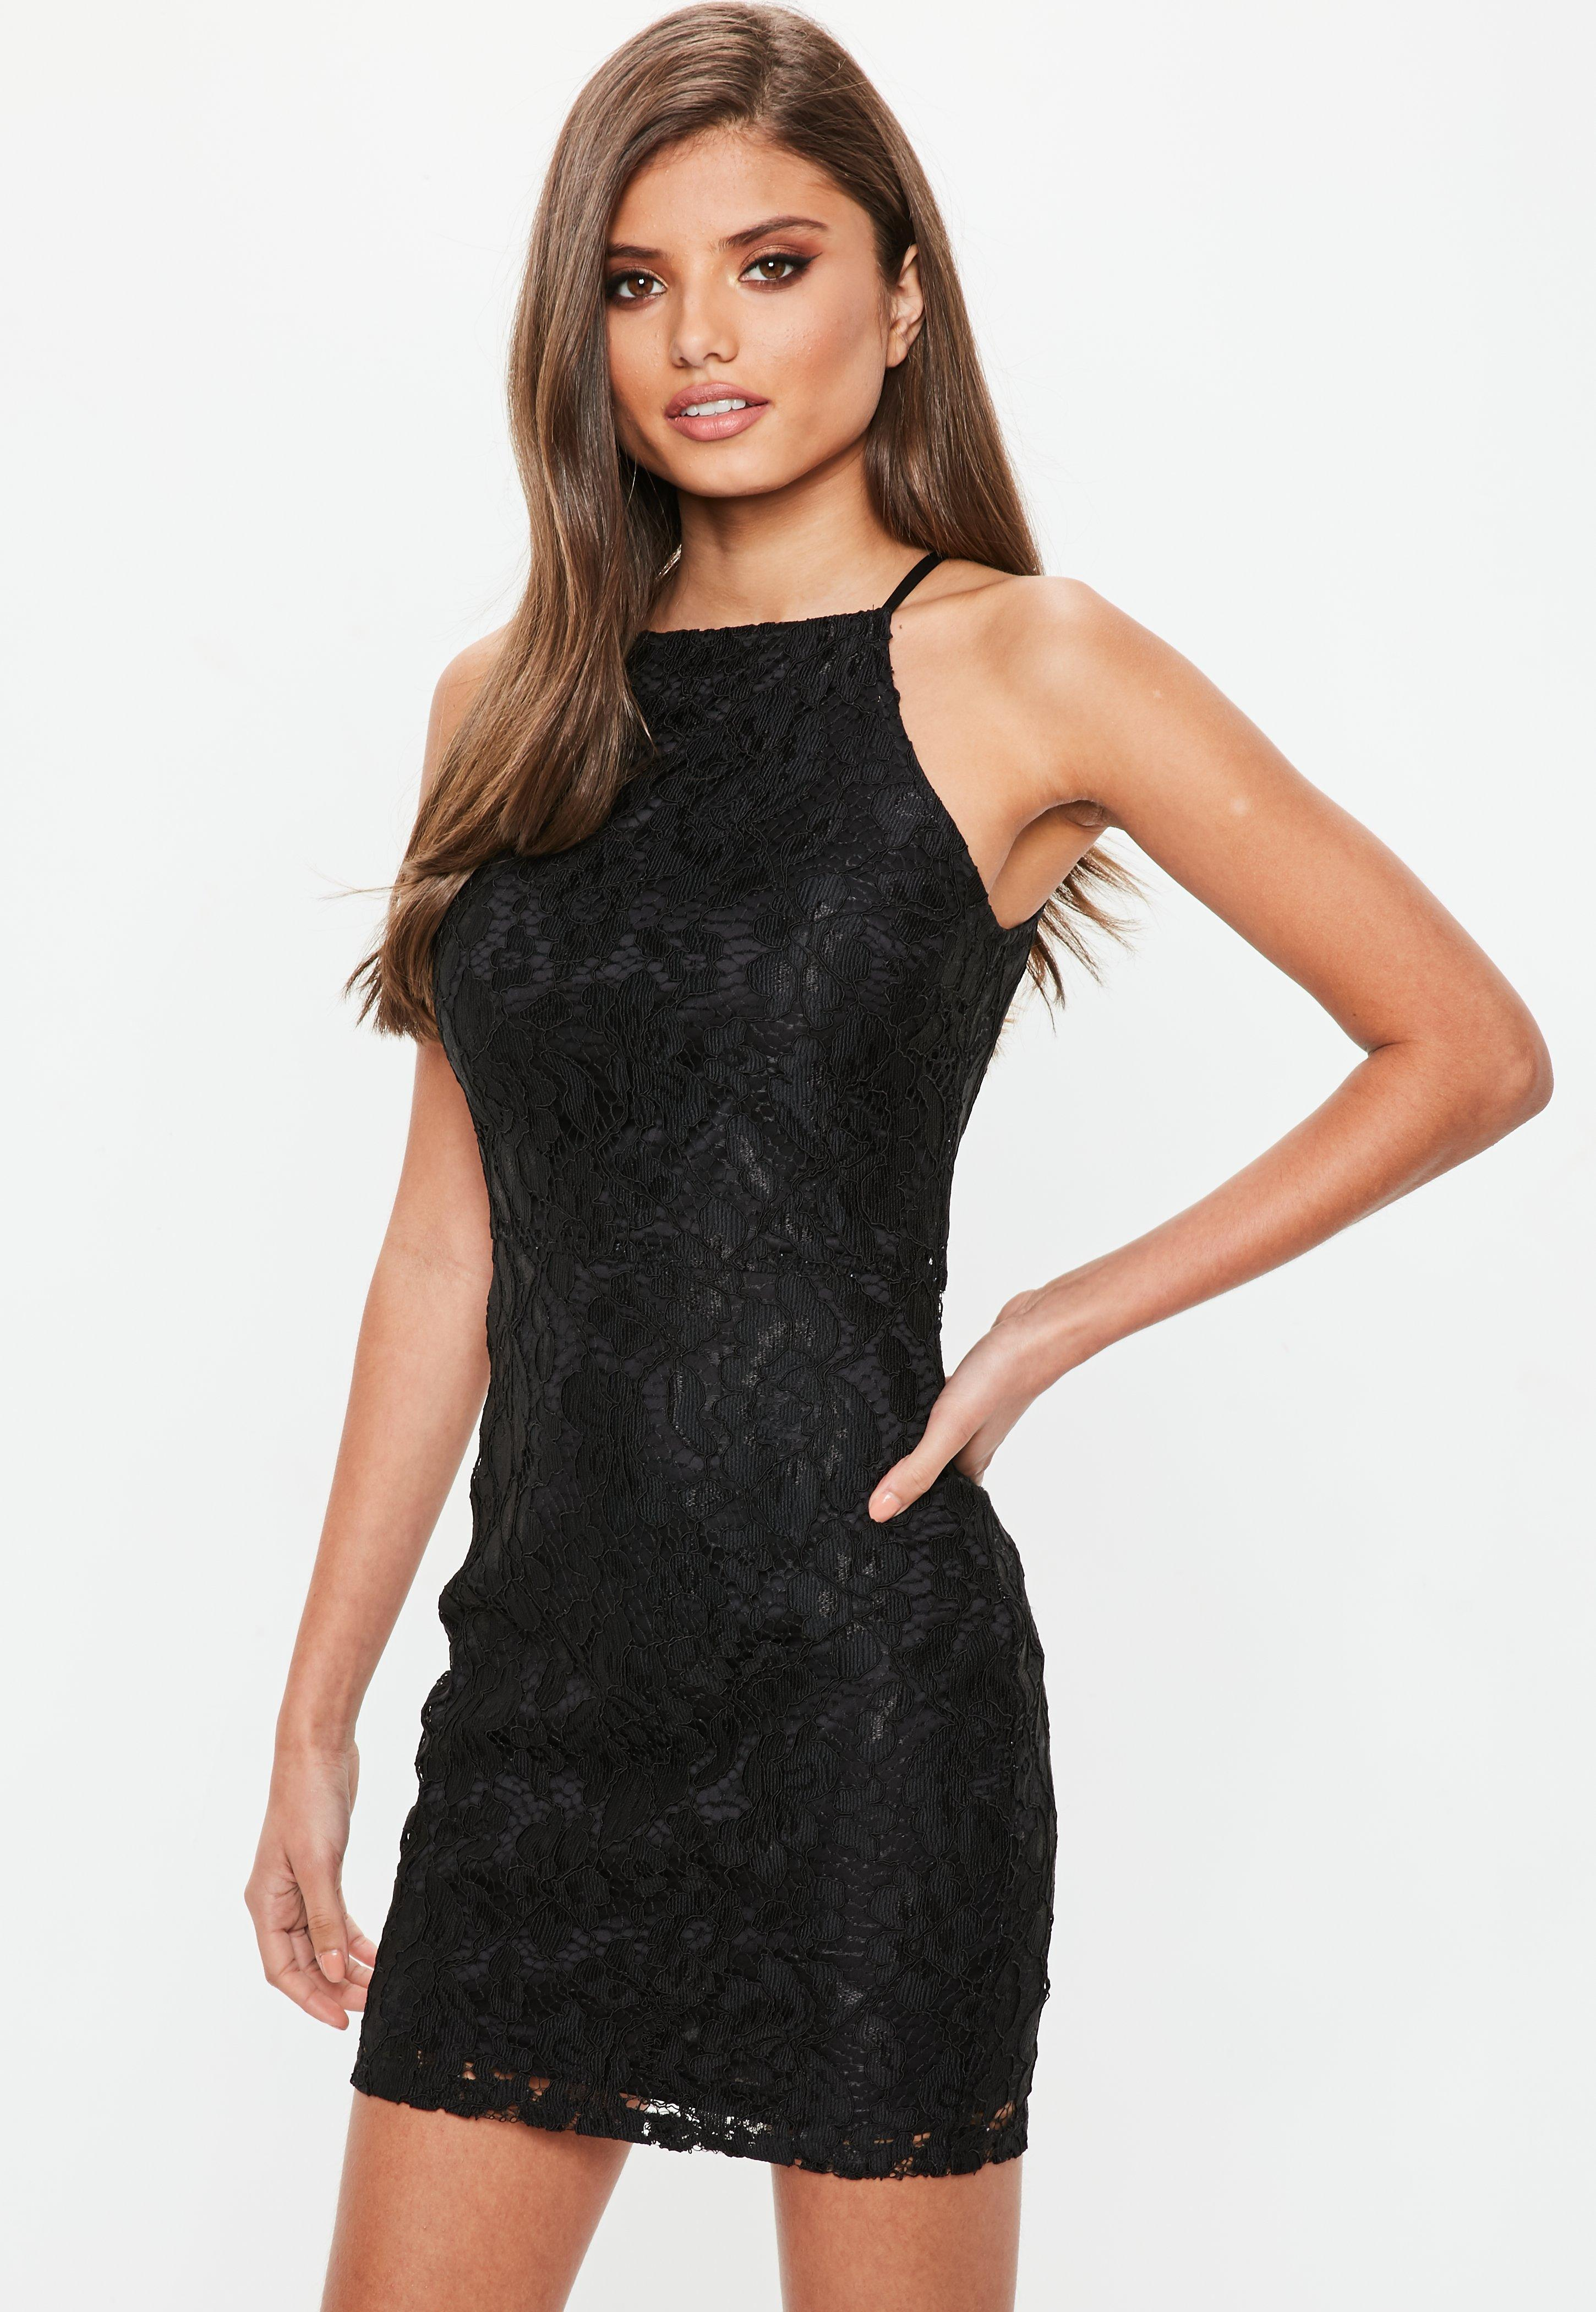 Nice Black Lace Dresses Carley Connellan